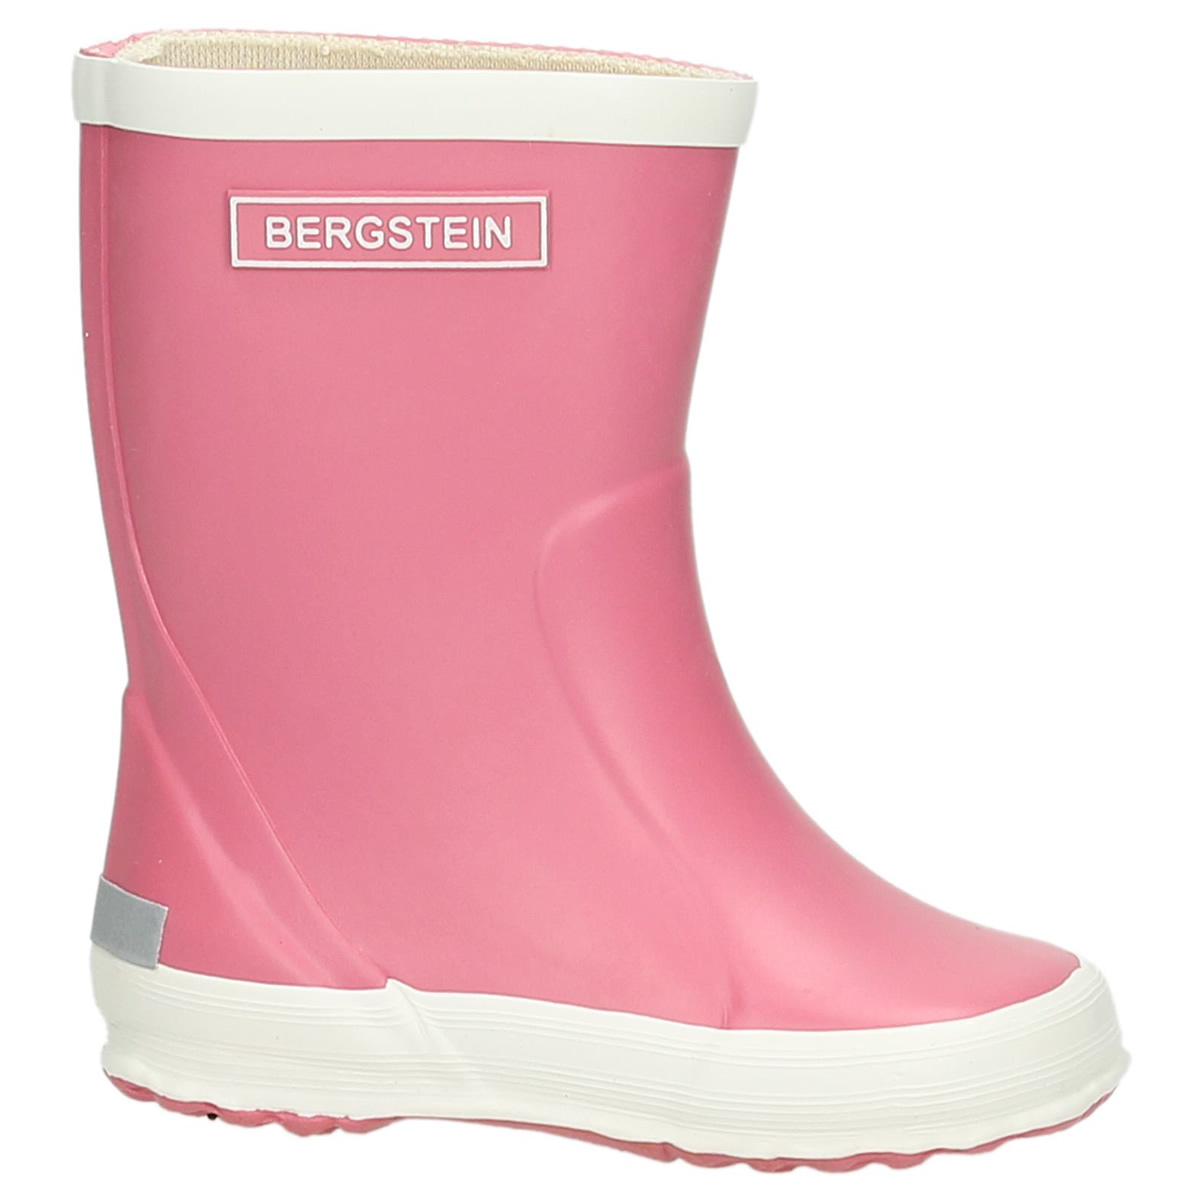 Chaussures Roses Bergstein Pour Les Hommes BeI31cb